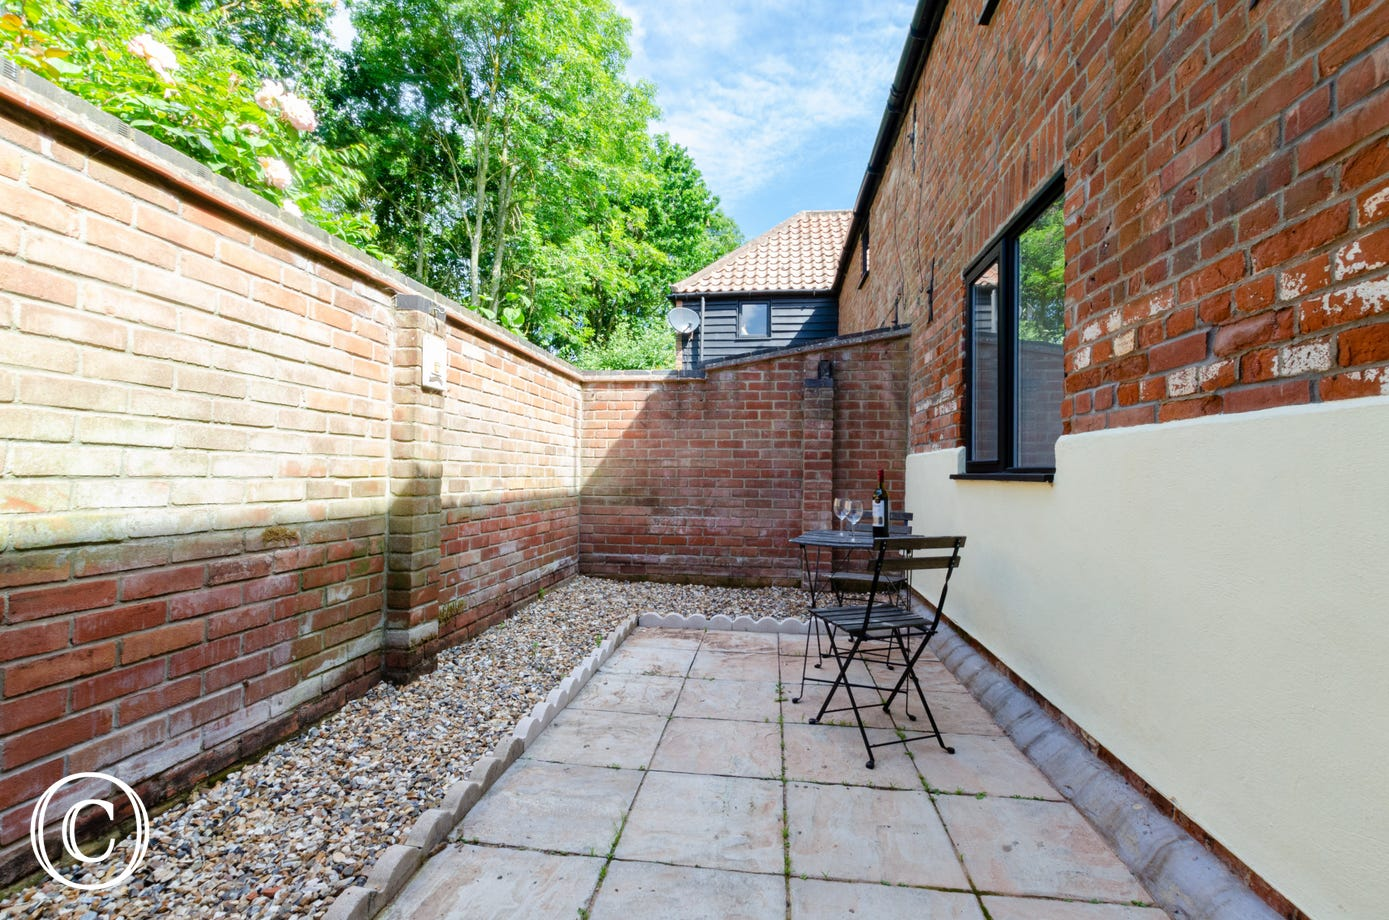 Enclosed patio area with garden furniture